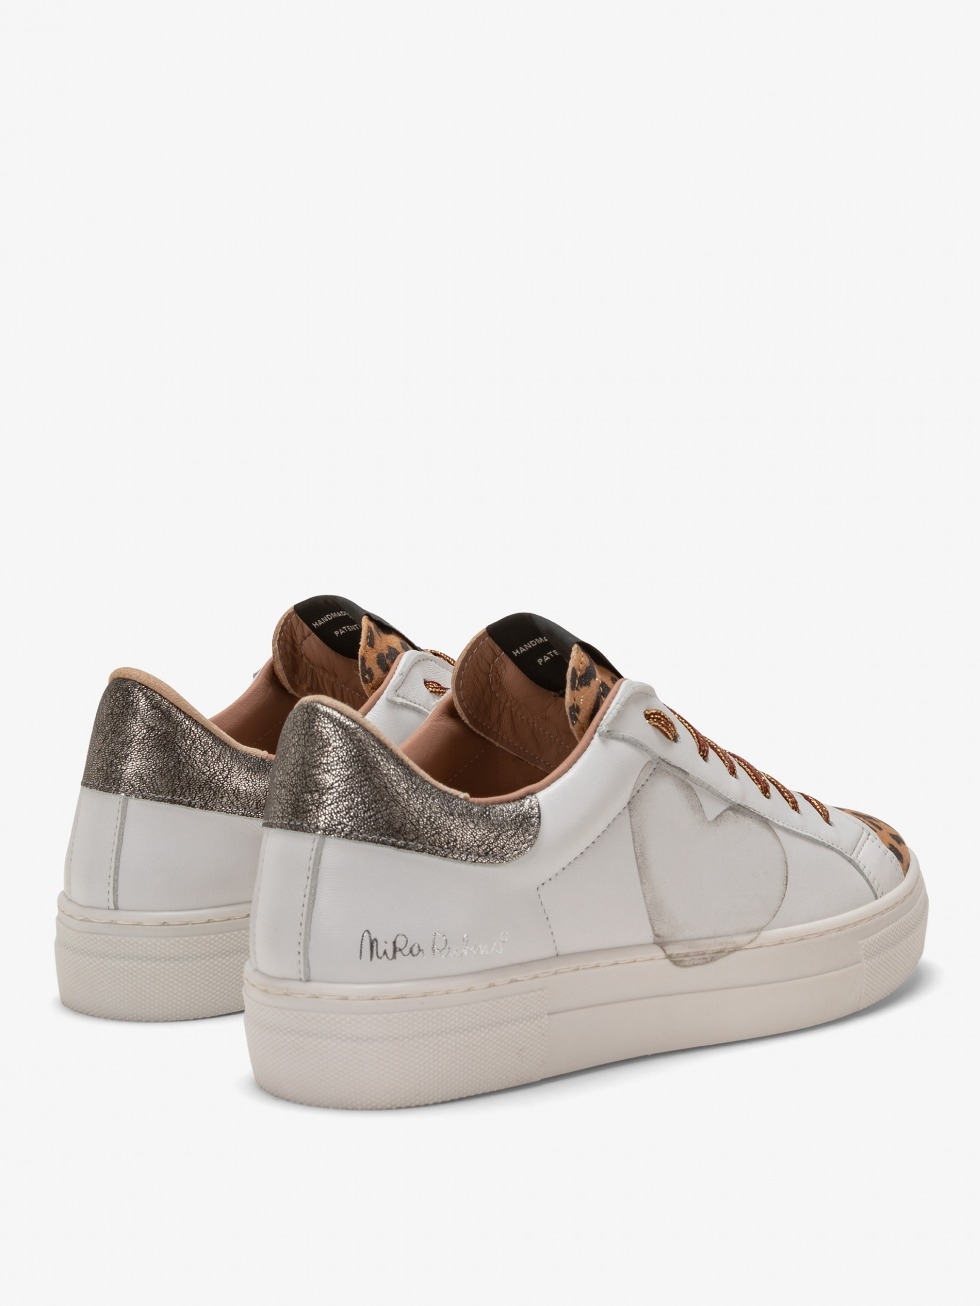 Martini Leo Vintage Sneakers - Smoke Heart